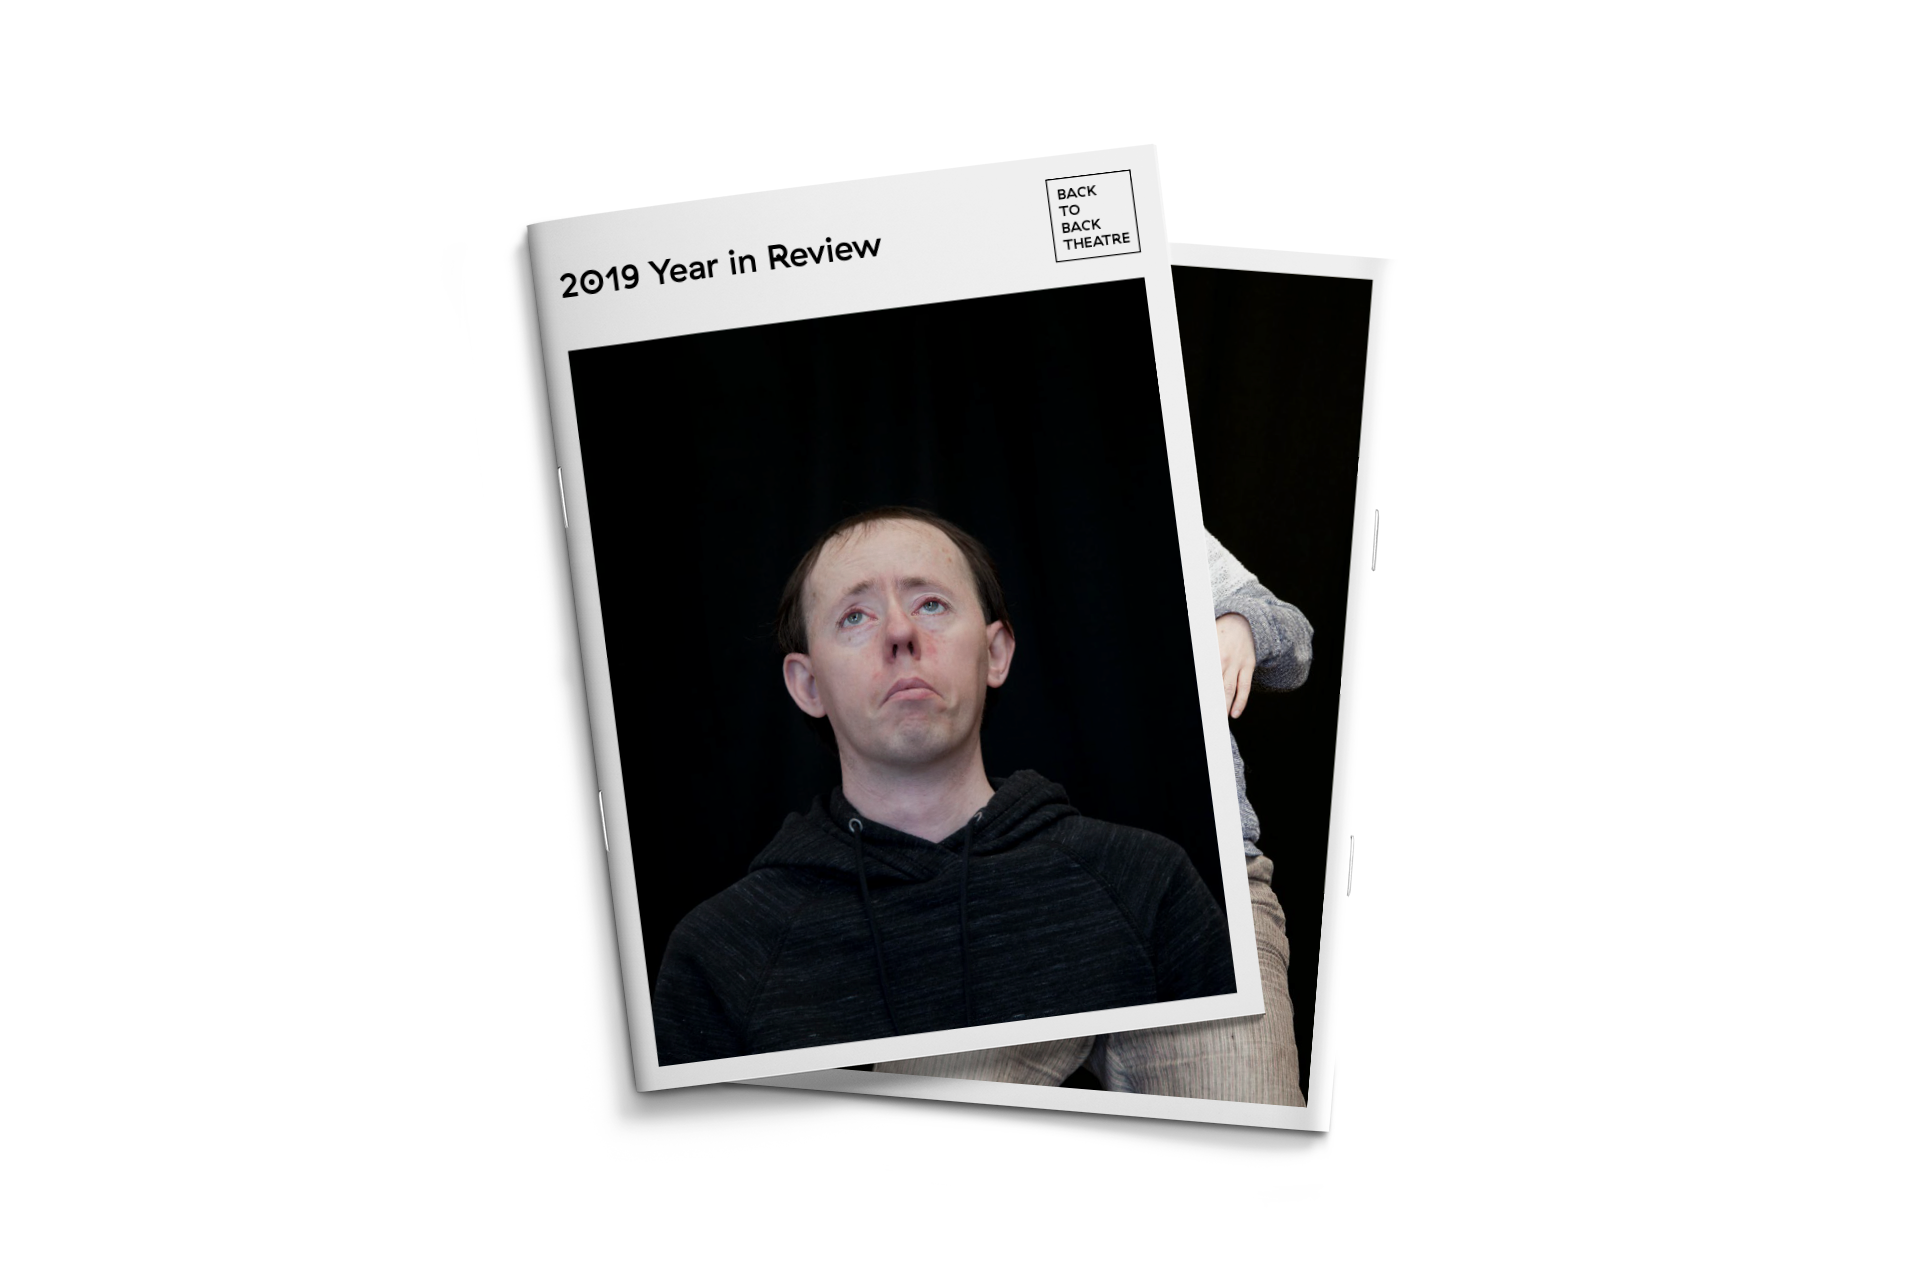 Back to Back Theatre's 2019 Year in Review — Front cover featuring ensemble member Simon Laherty and back cover featuring ensemble member Sarah Mainwaring